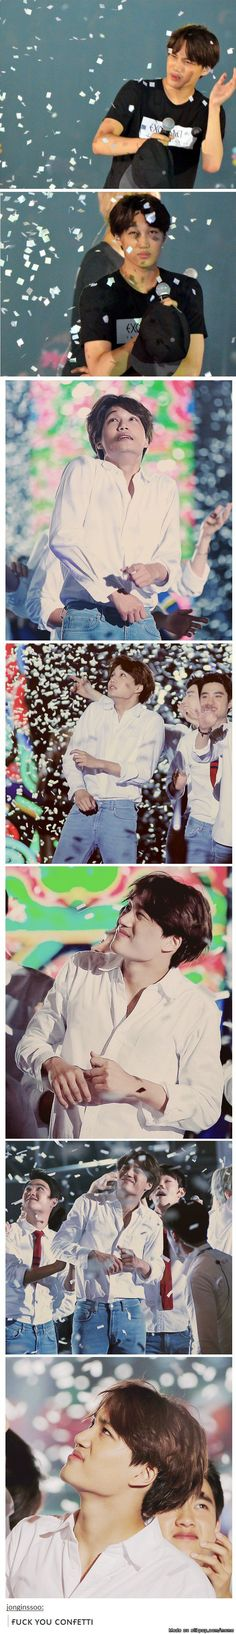 Kai vs Confetti | allkpop Meme Center